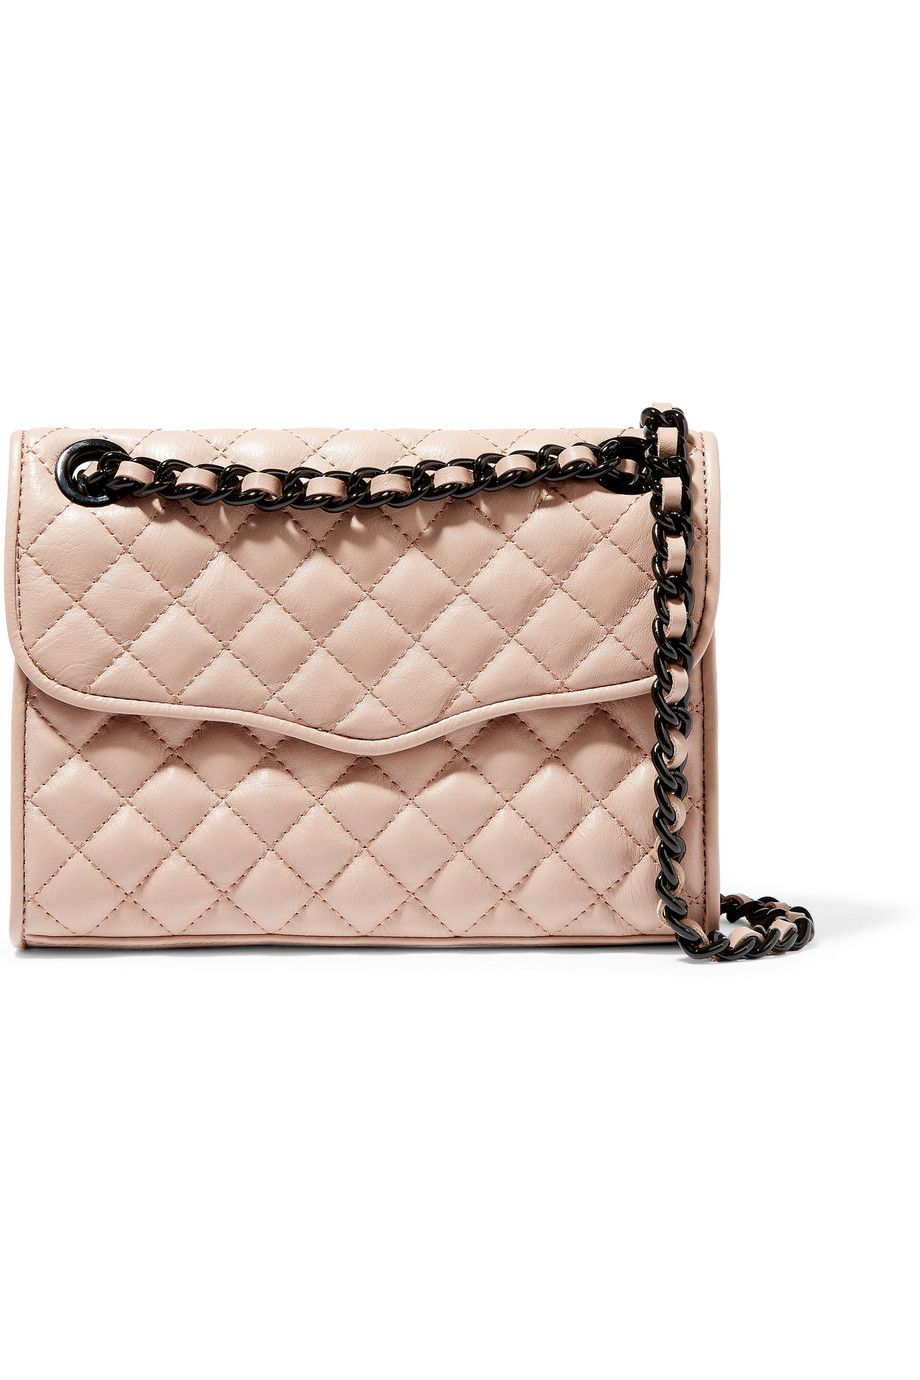 REBECCA MINKOFF Mini Affair Quilted Leather Shoulder Bag. #rebeccaminkoff #bags #shoulder bags #leather